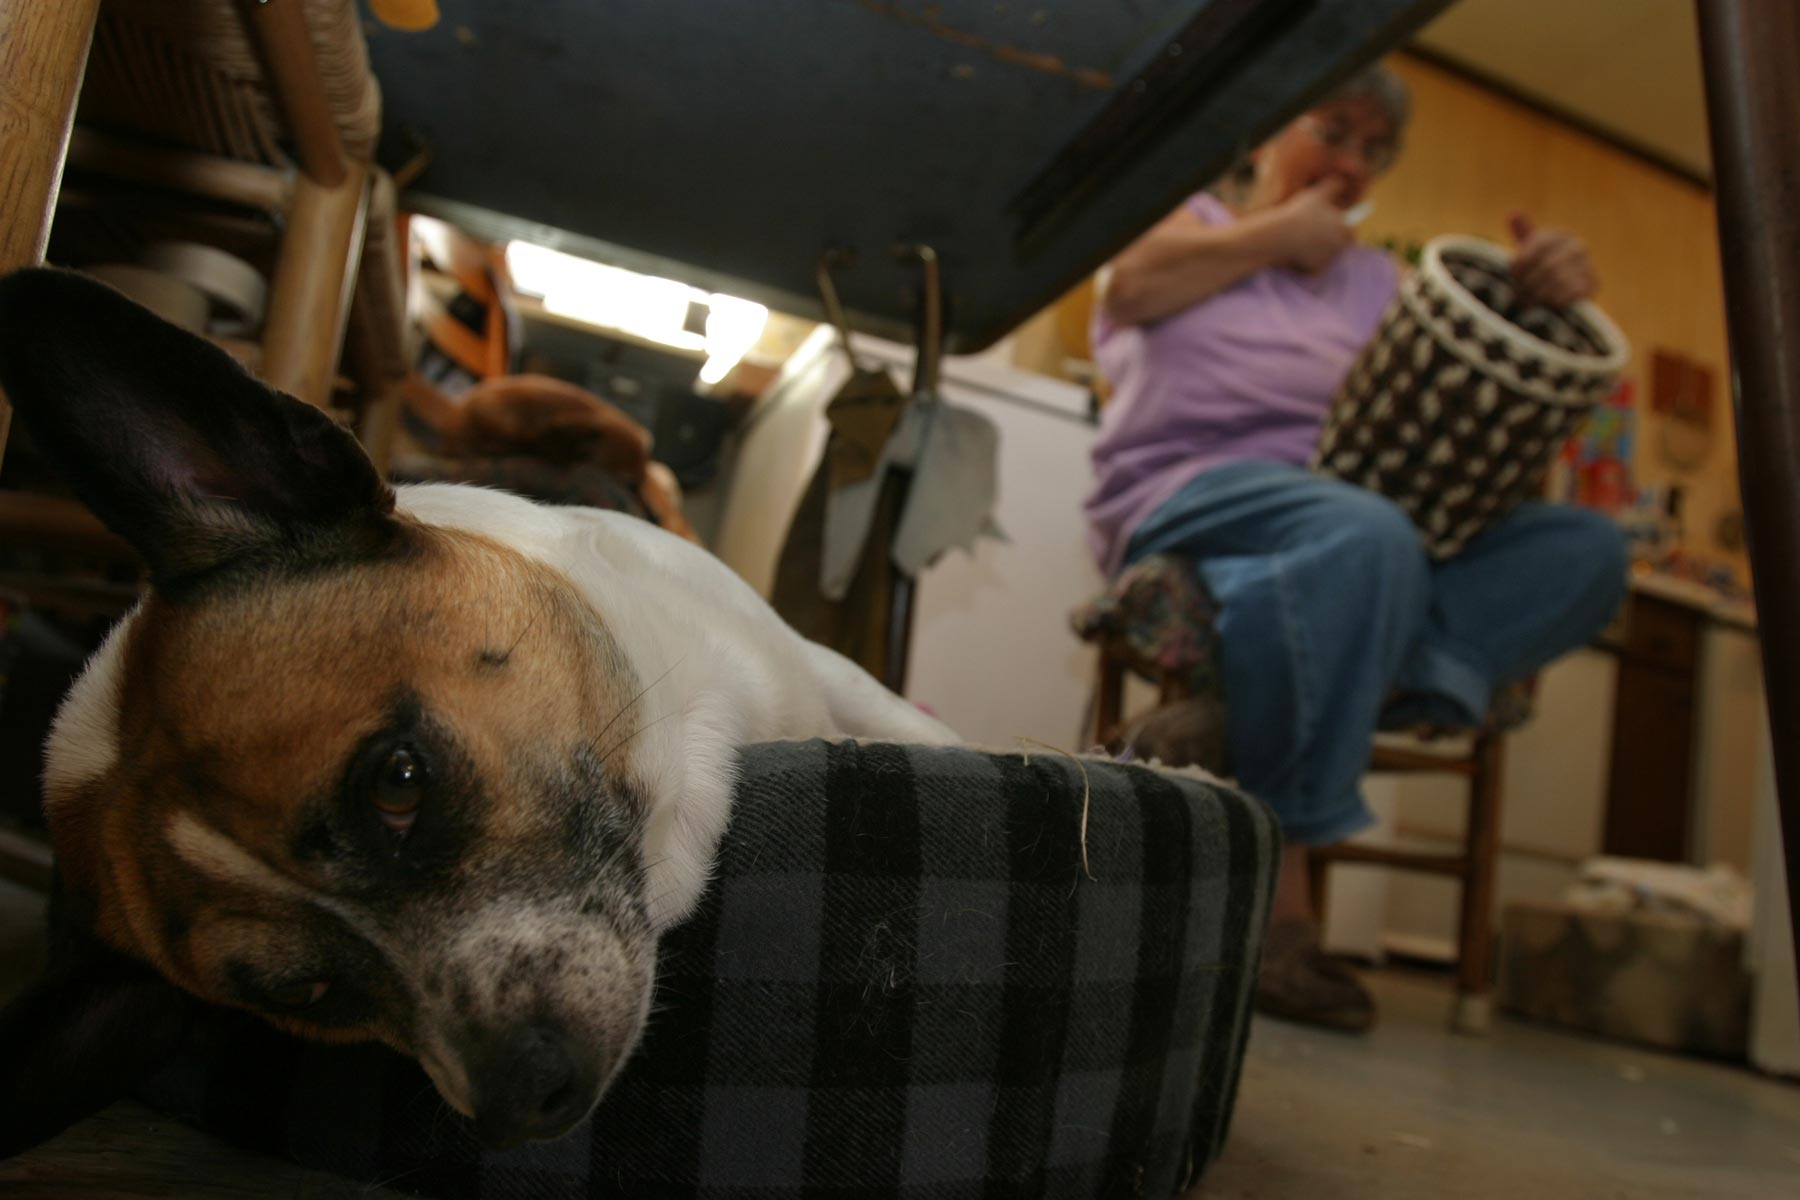 Dog hanging head off of its bed while a woman weaves a basket in the background